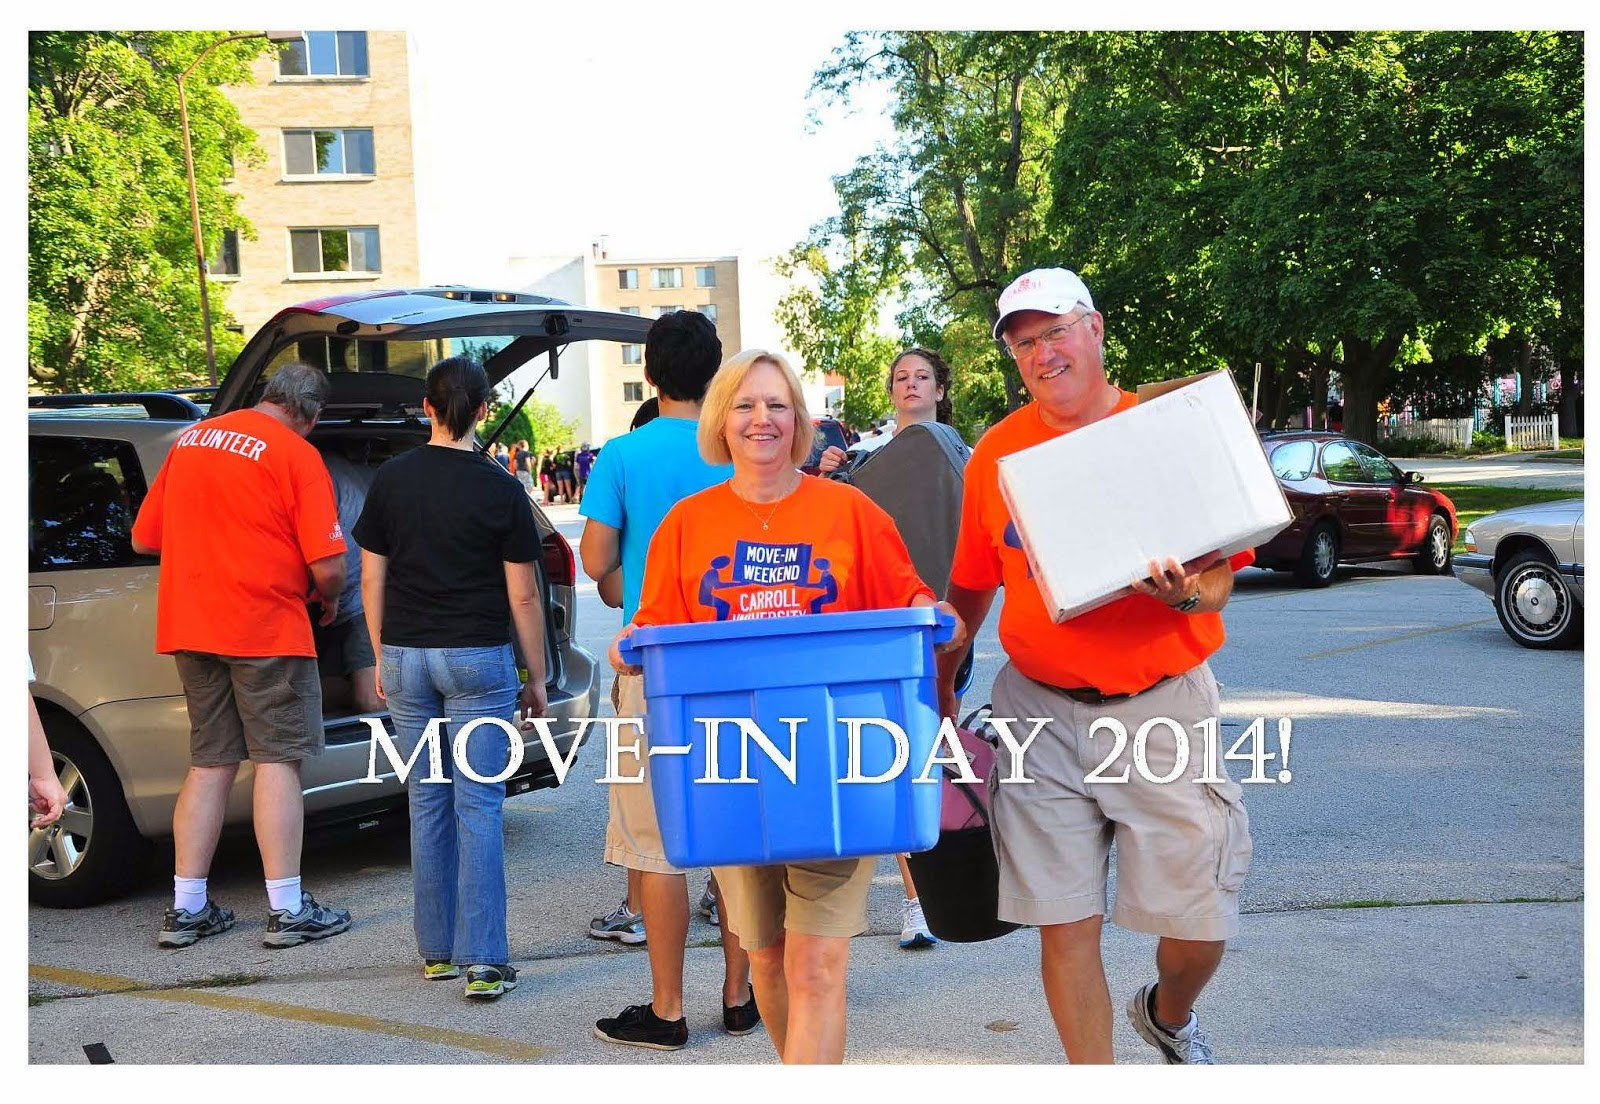 https://my.carrollu.edu/ICS/Departments/Residence_Life_and_Housing/Move-In_Day_2014.jnz